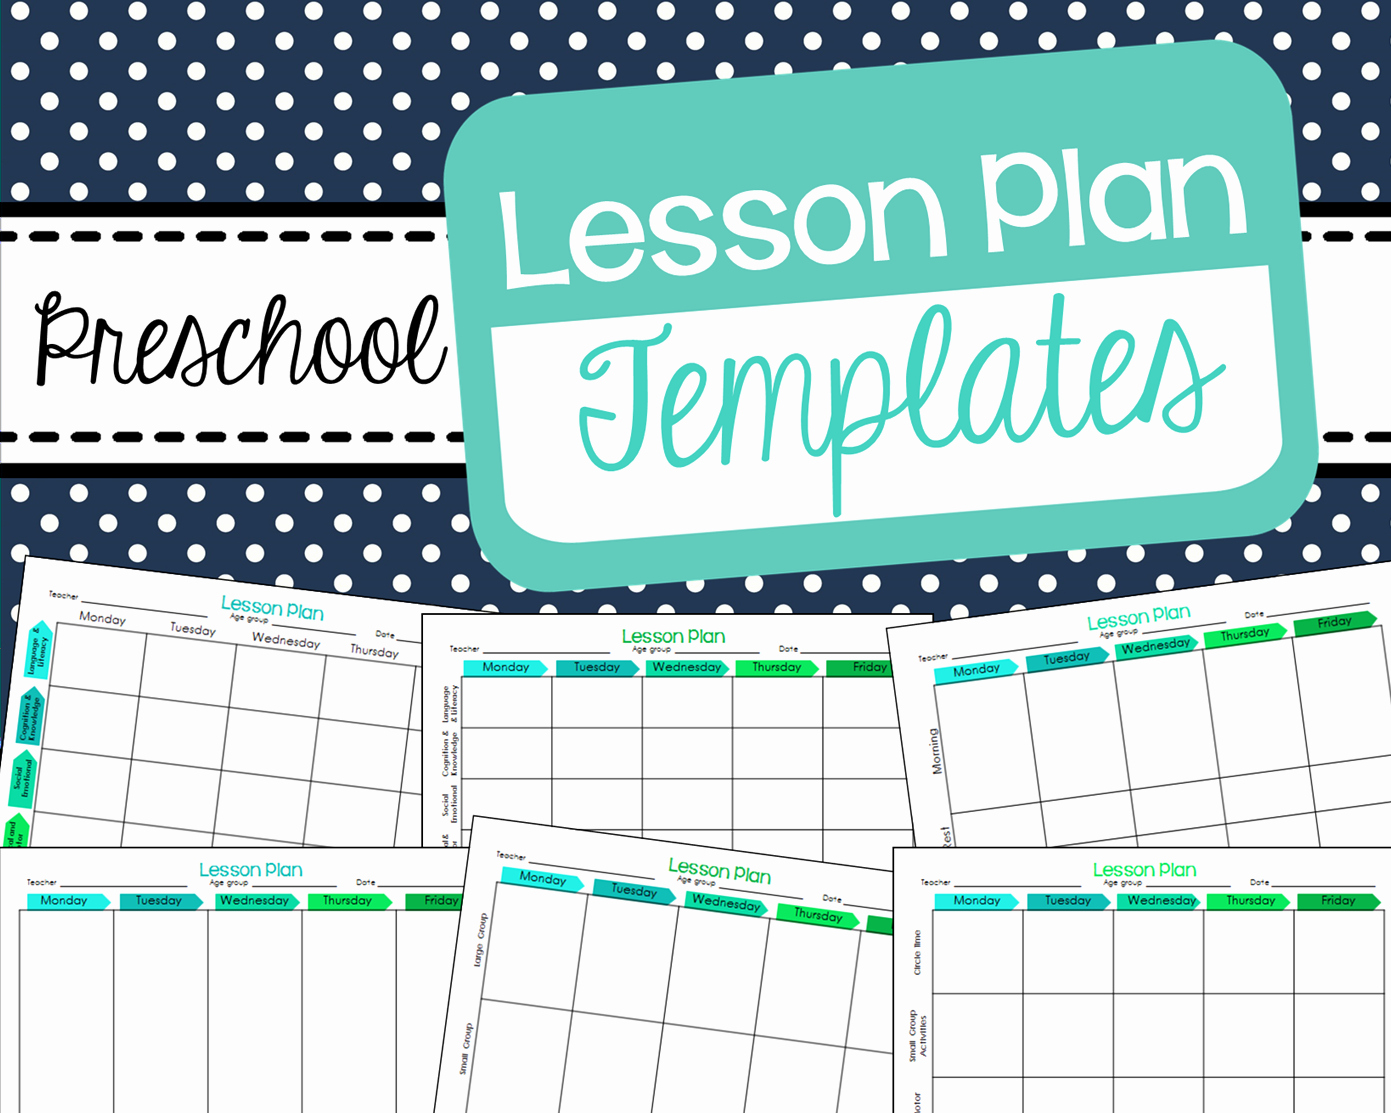 Daycare Lesson Plan Template Awesome Free Preschool Lesson Plan Templates